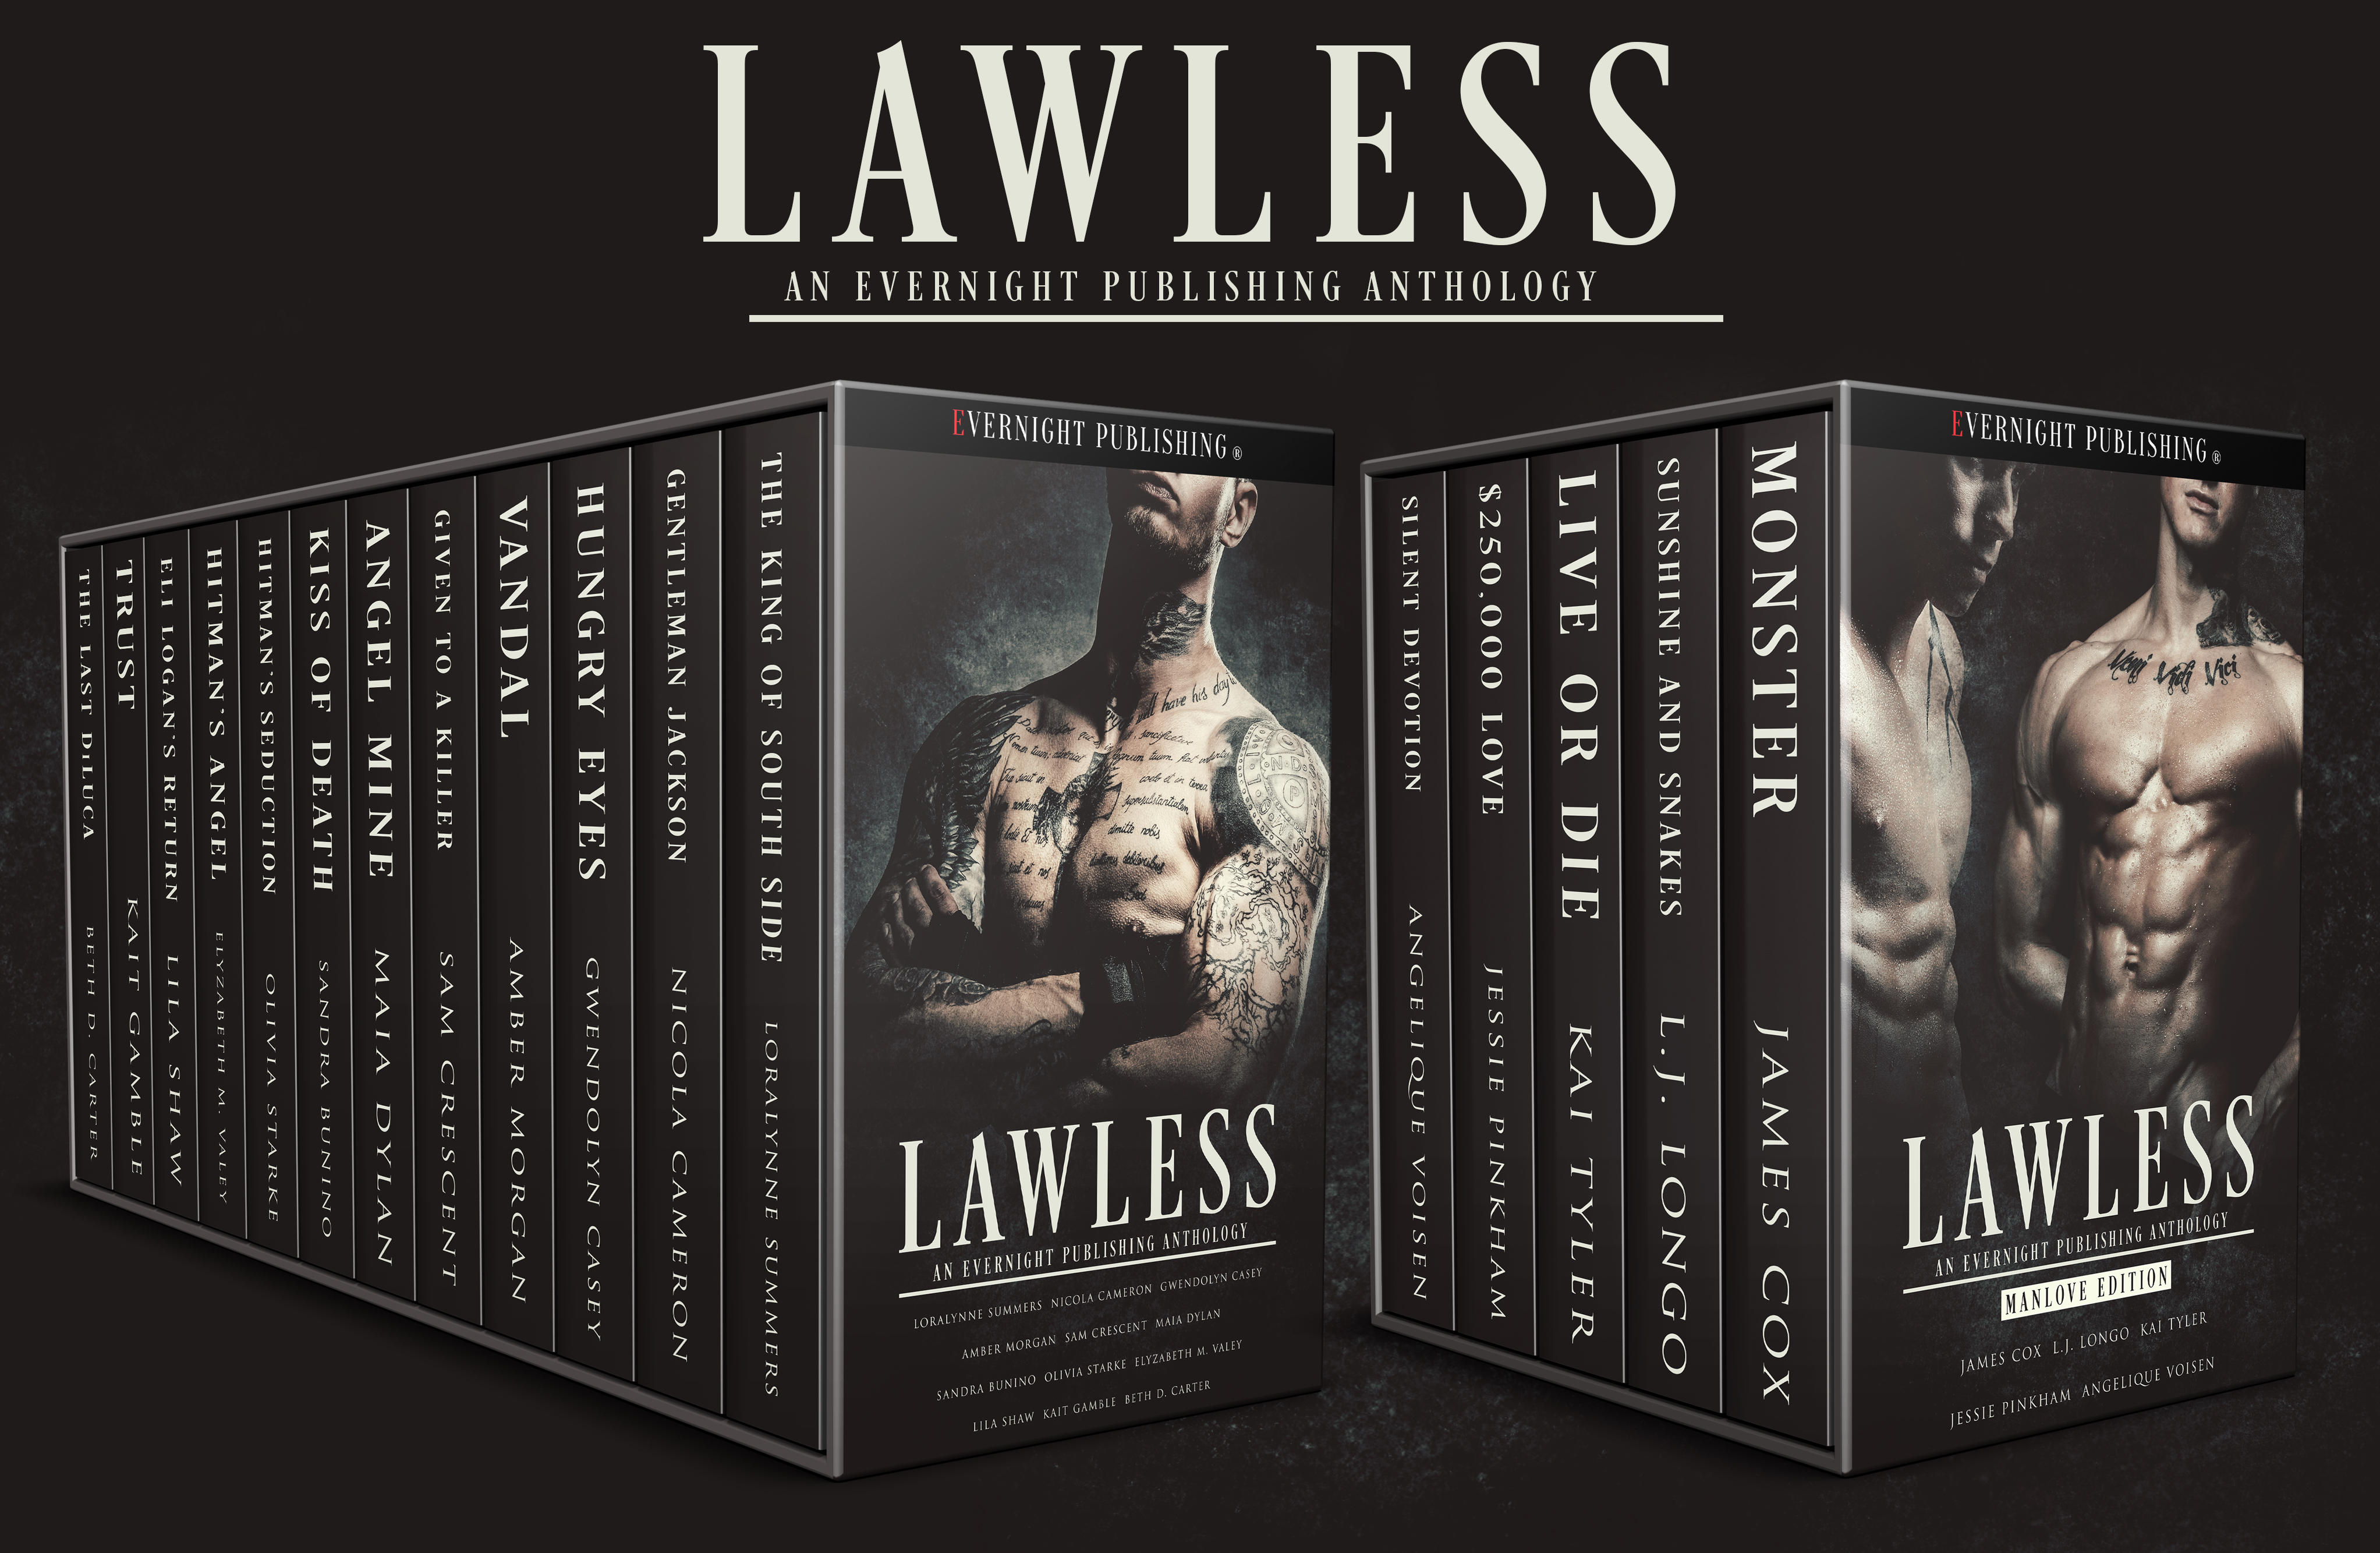 lawless-antho-mf-evernightpublishing-sept2017-3d-twin-boxset.jpg